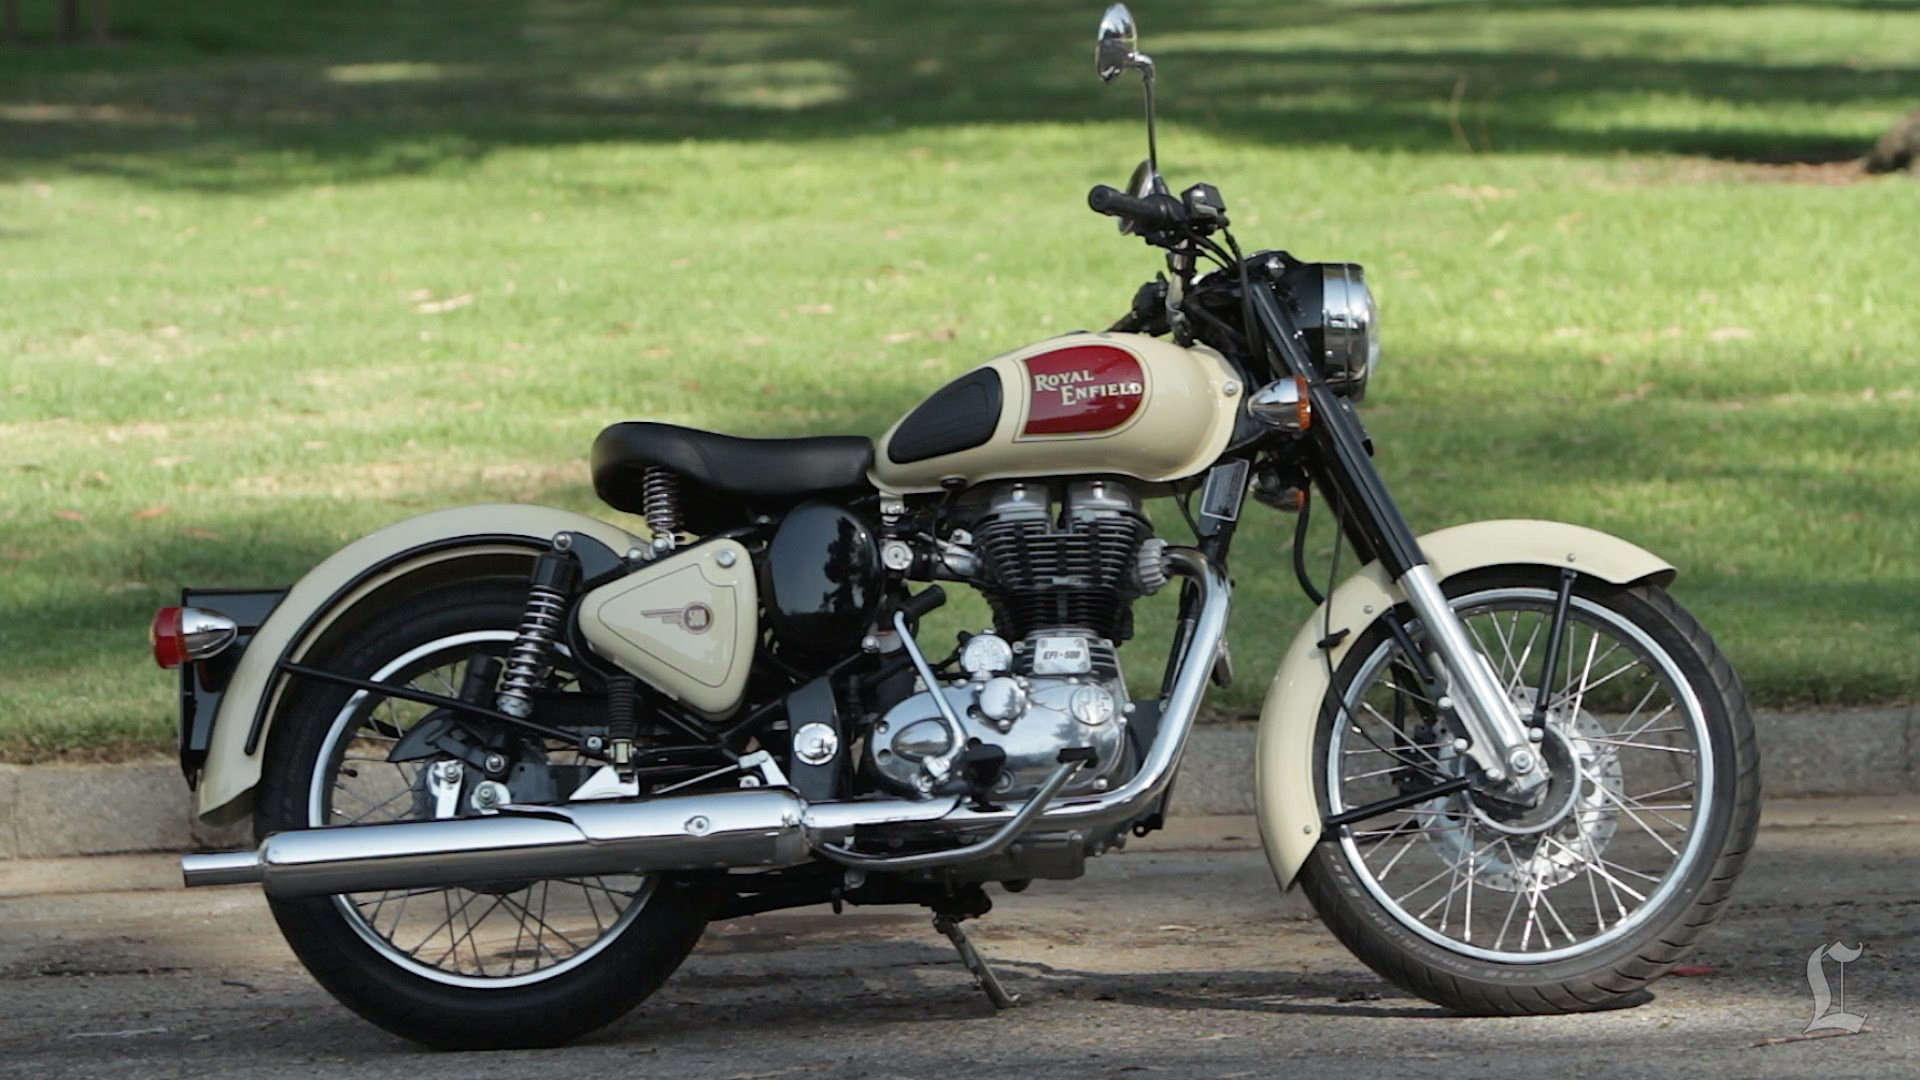 Royal Enfield Bullet C5 Classic EFI 2010 images #127526